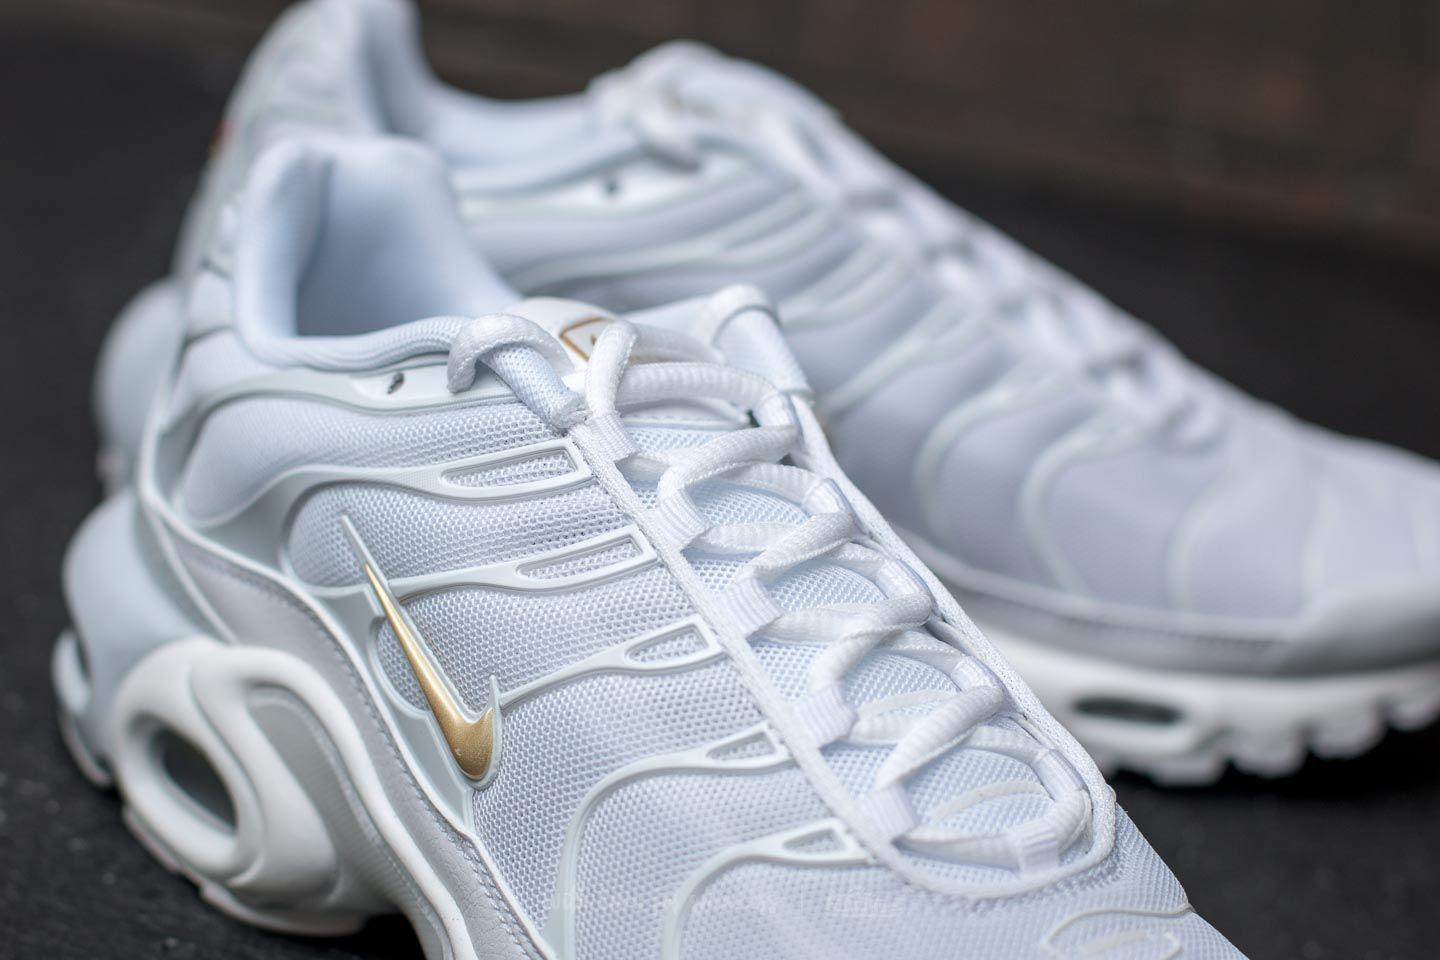 8c2a02fa3ce7 ... cheapest lyst nike air max plus pure platinum metallic gold in metallic  5634a f3fc6